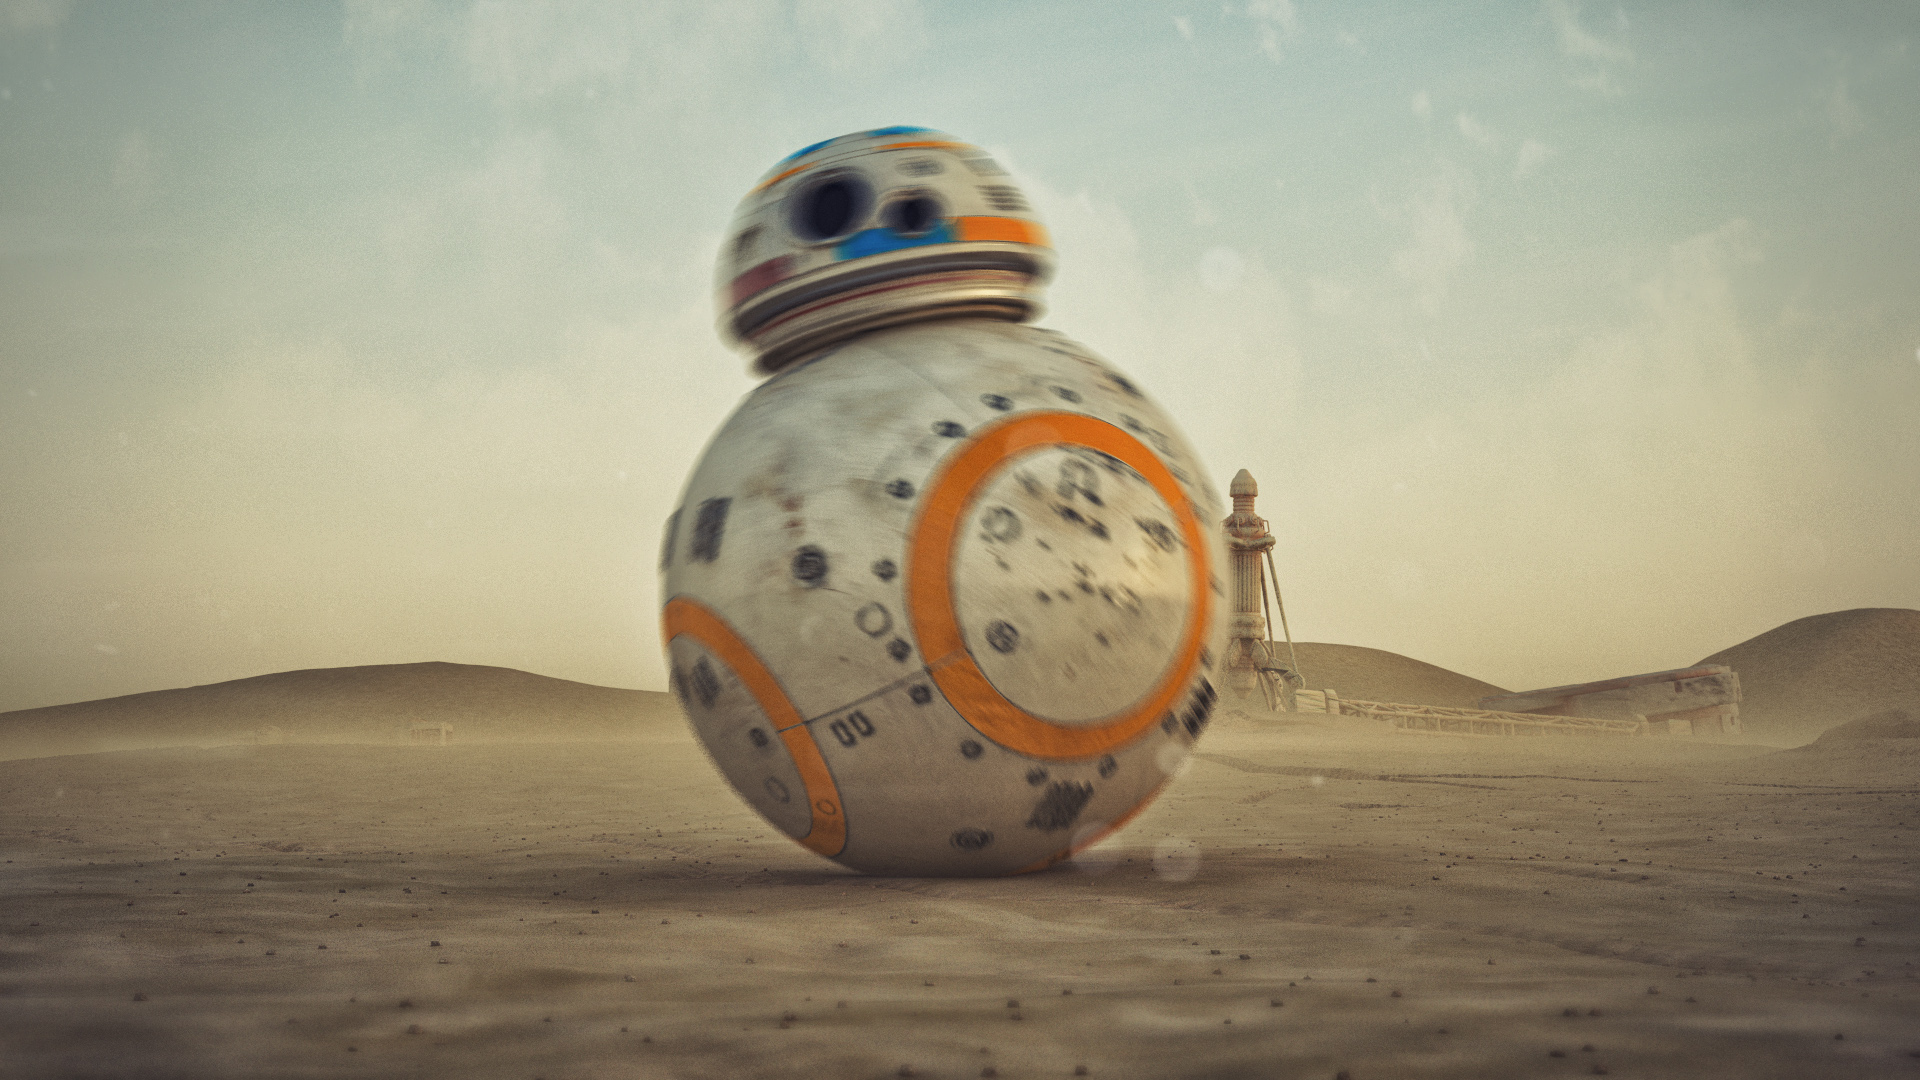 Cool minimalist wallpapers - Bb8 By Sanfranguy On Deviantart